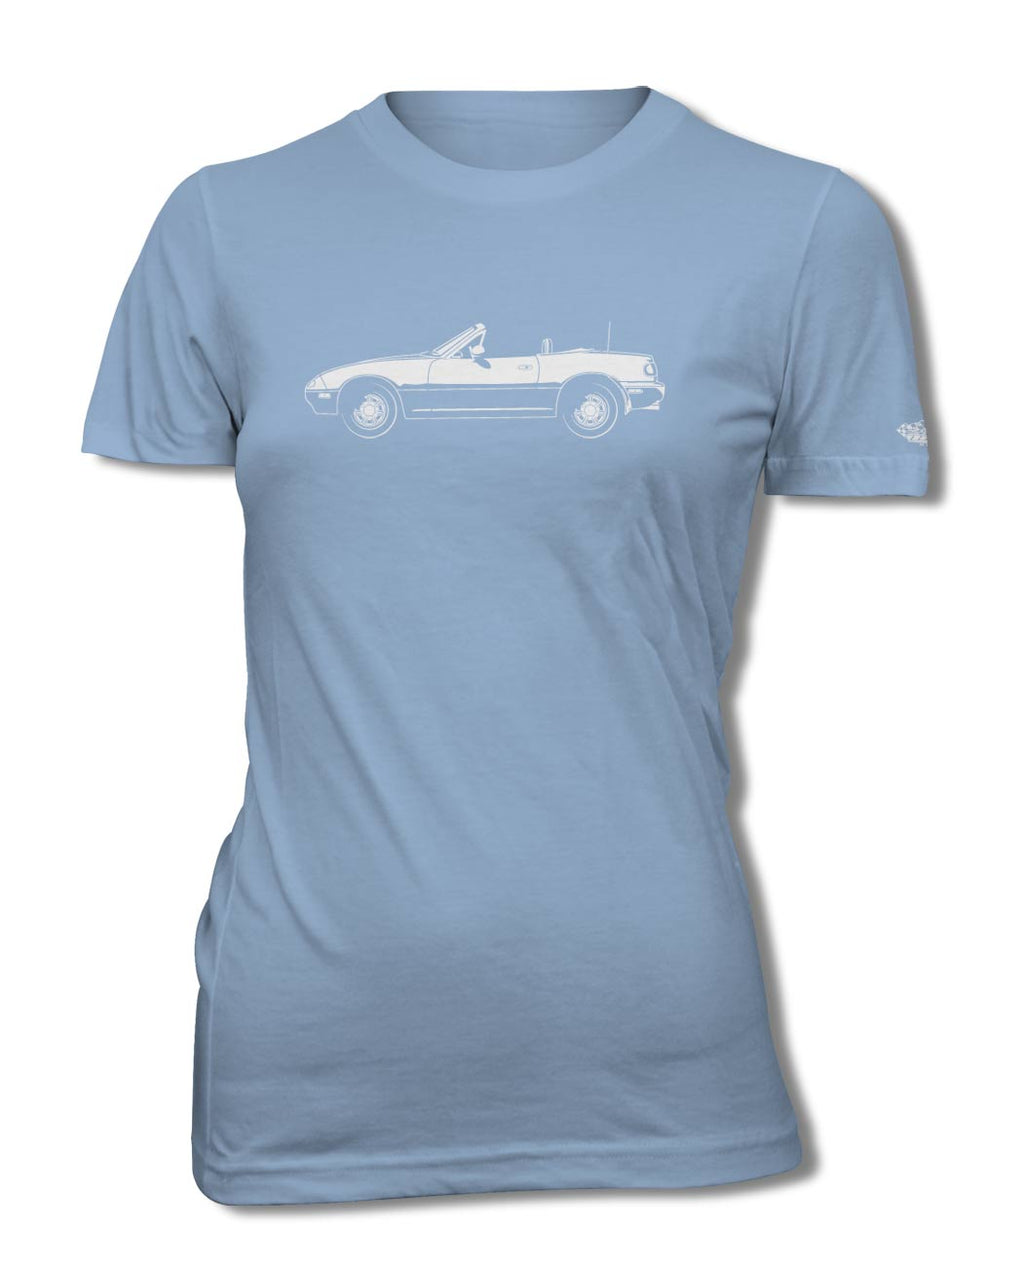 Mazda Miata MX-5 Convertible T-Shirt - Women - Side View